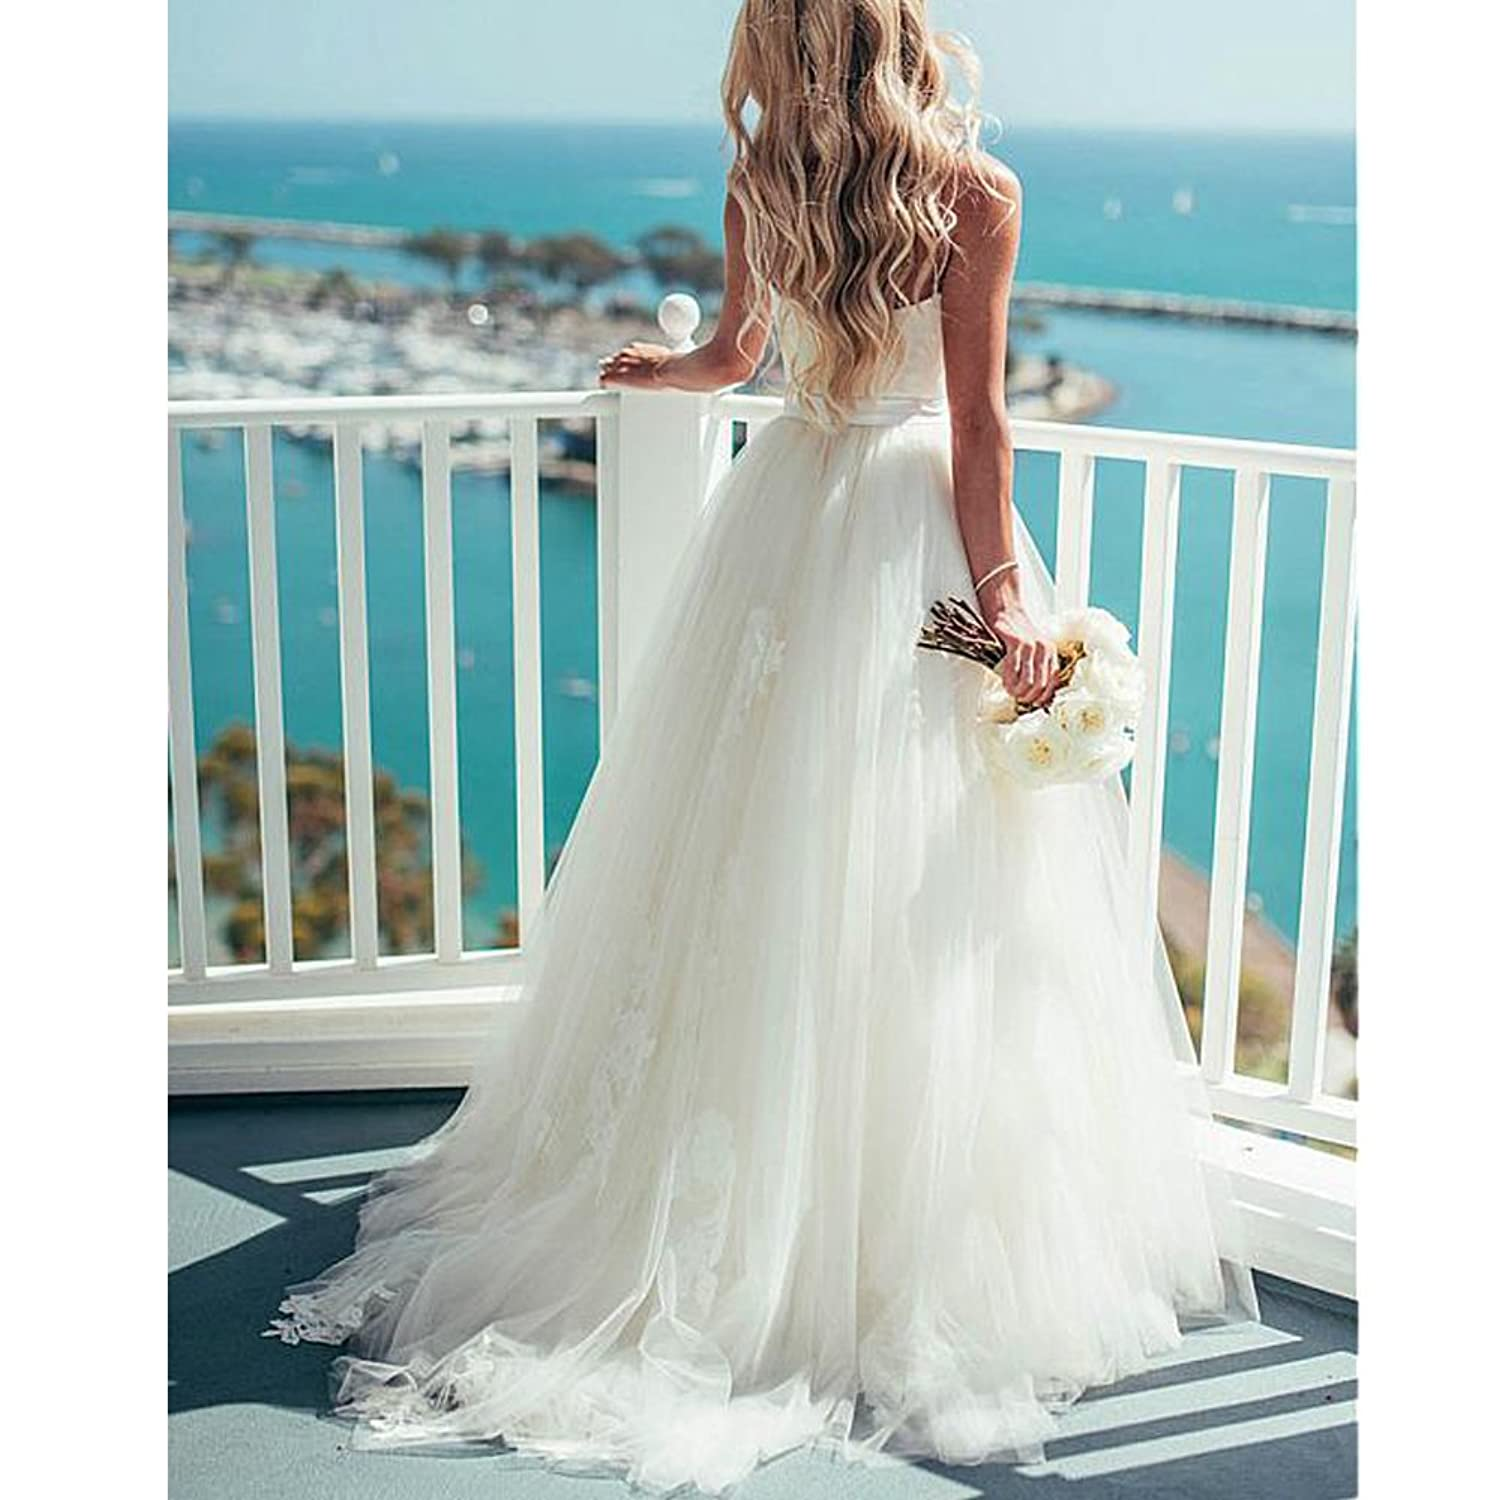 Nicefashion Spaghetti Strap Boho Lace Tulle Beach Wedding Dress ...